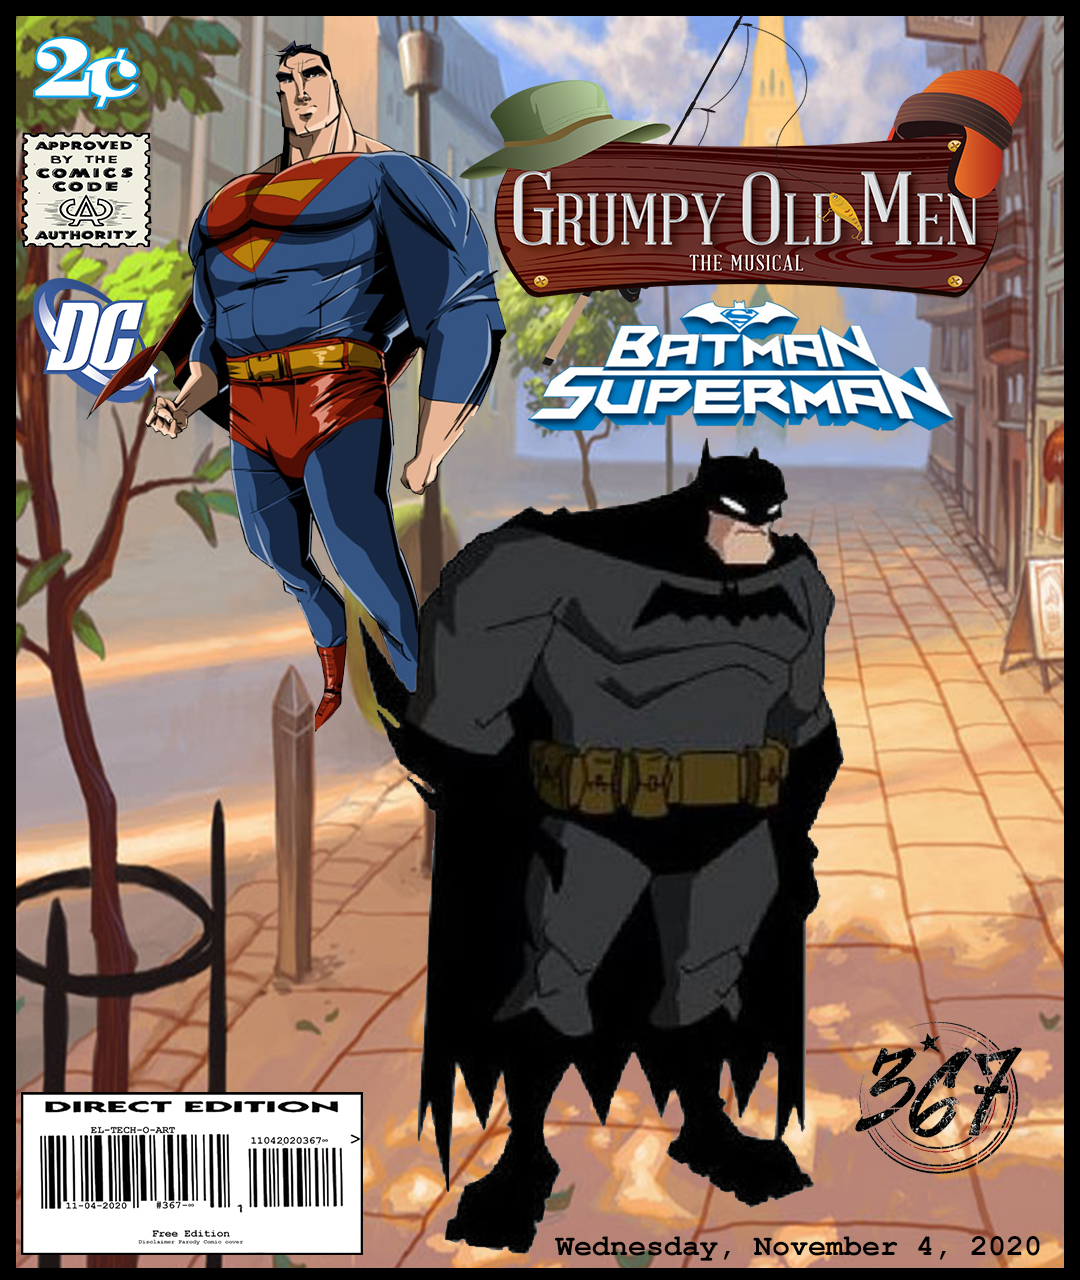 Fan Photoshop Edit Comic Cover Of old Superman and Batman